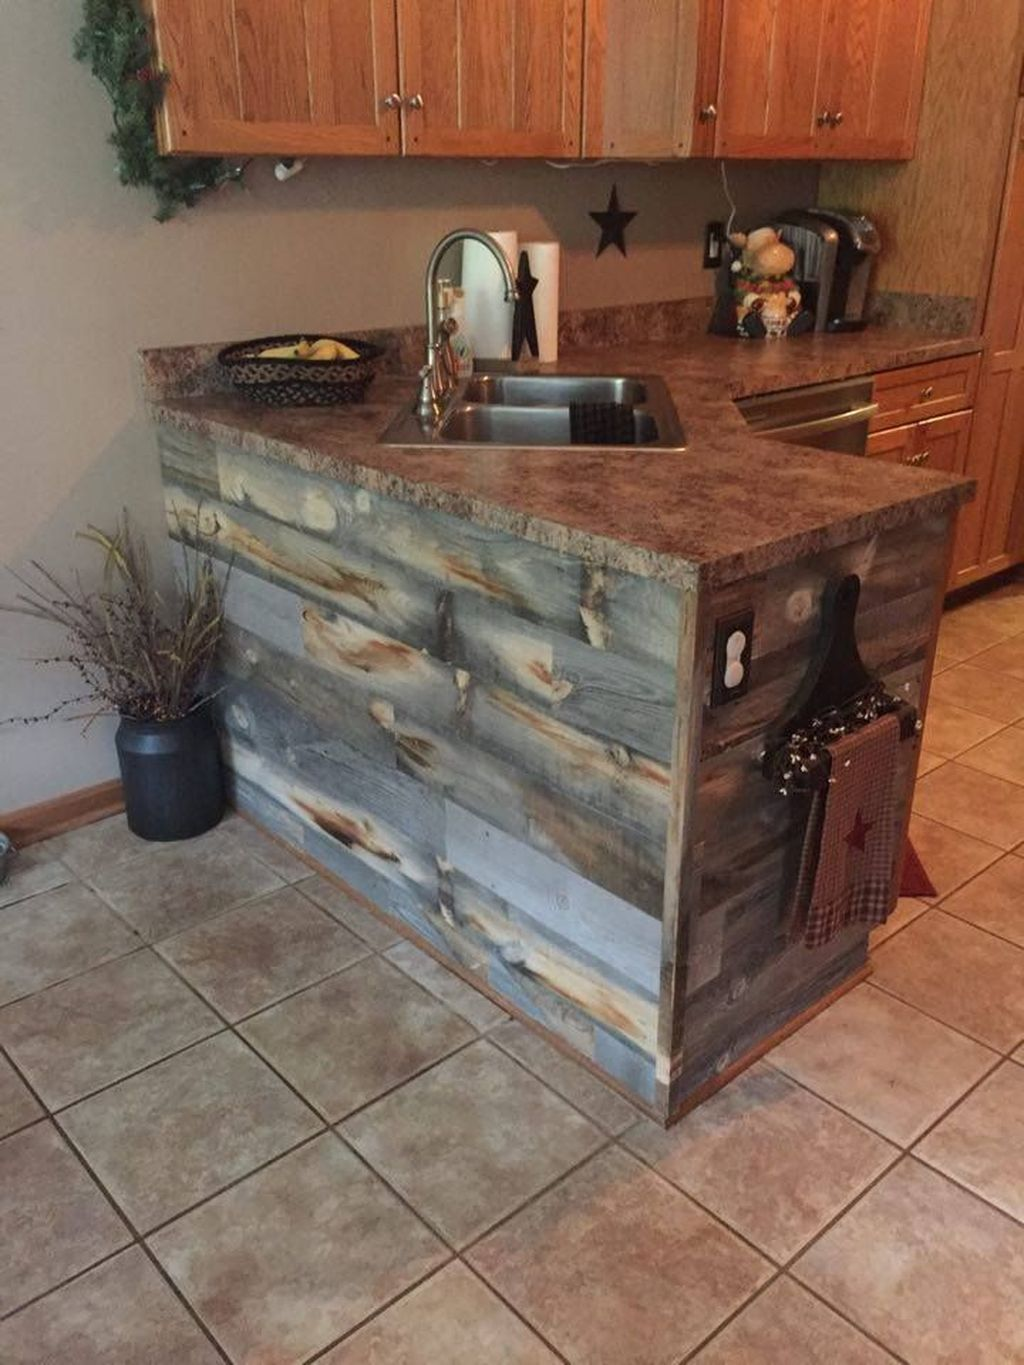 50 Popular Rustic Kitchen Cabinet Should You Love - Rustic kitchen island, Rustic kitchen design, Homemade kitchen island, Rustic kitchen, Rustic house, Kitchen decor - A rustic kitchen cabinet is always a good addition to a kitchen  That's right  It doesn't matter what kind of décor your kitchen has, a rustic cabinet can blend nicely    Continue Read >>